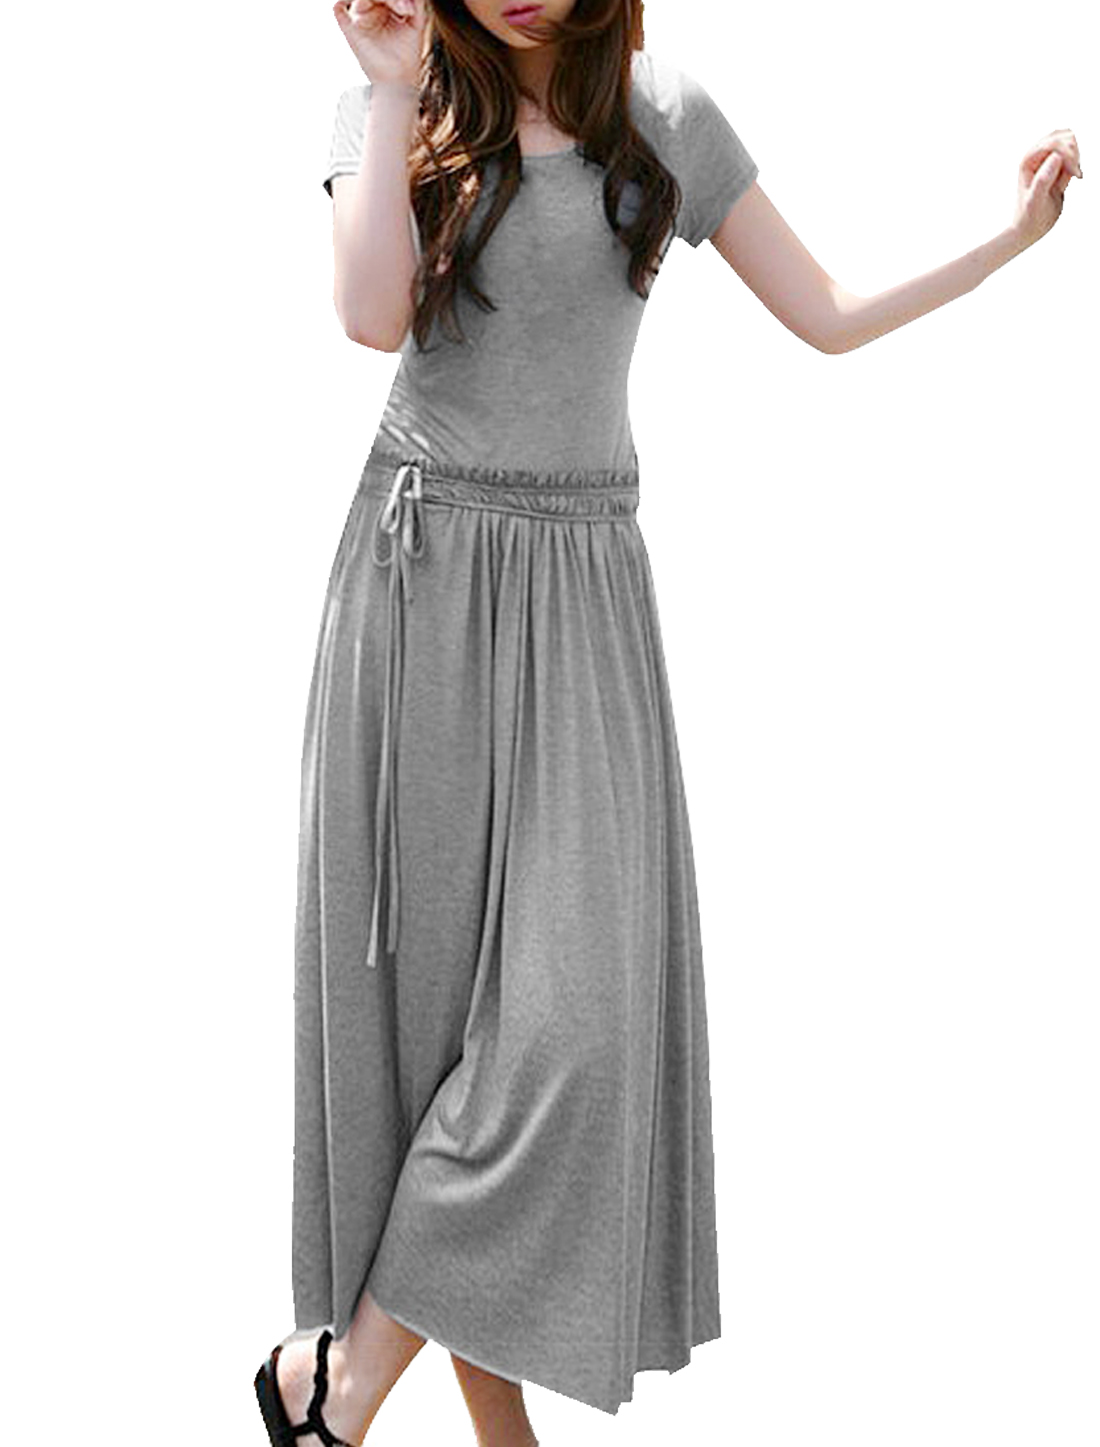 Woman Scoop Neck Short Sleeve Long Dress Heather Gray M